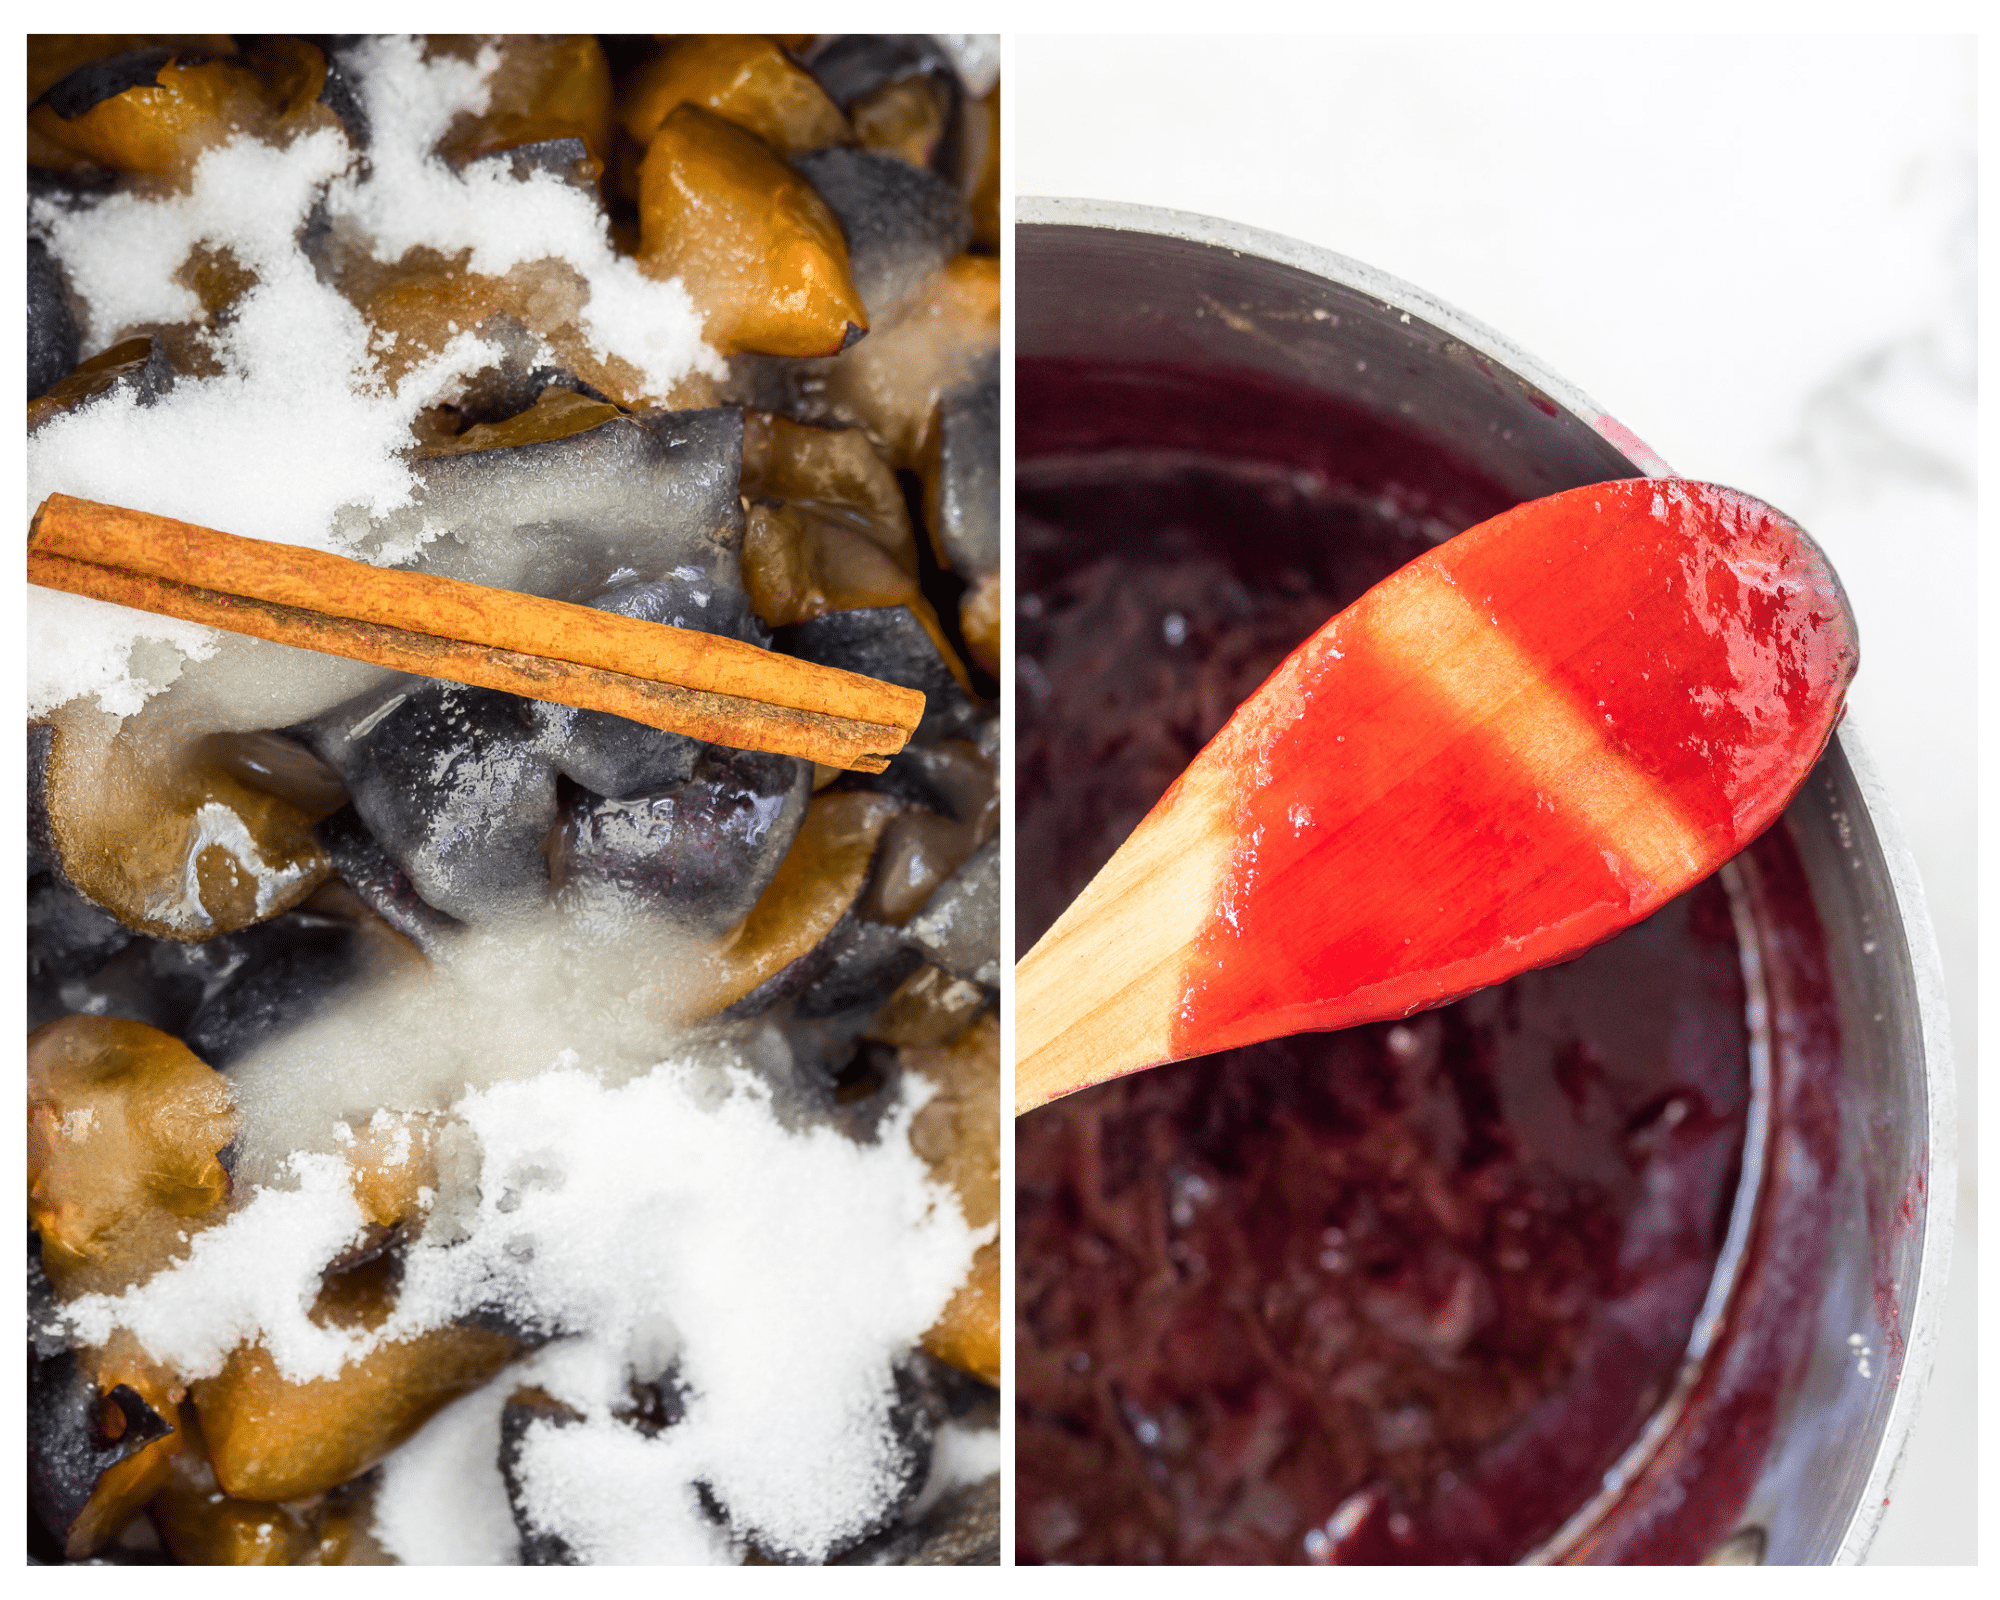 Two pictures showing the process of making plum jam.